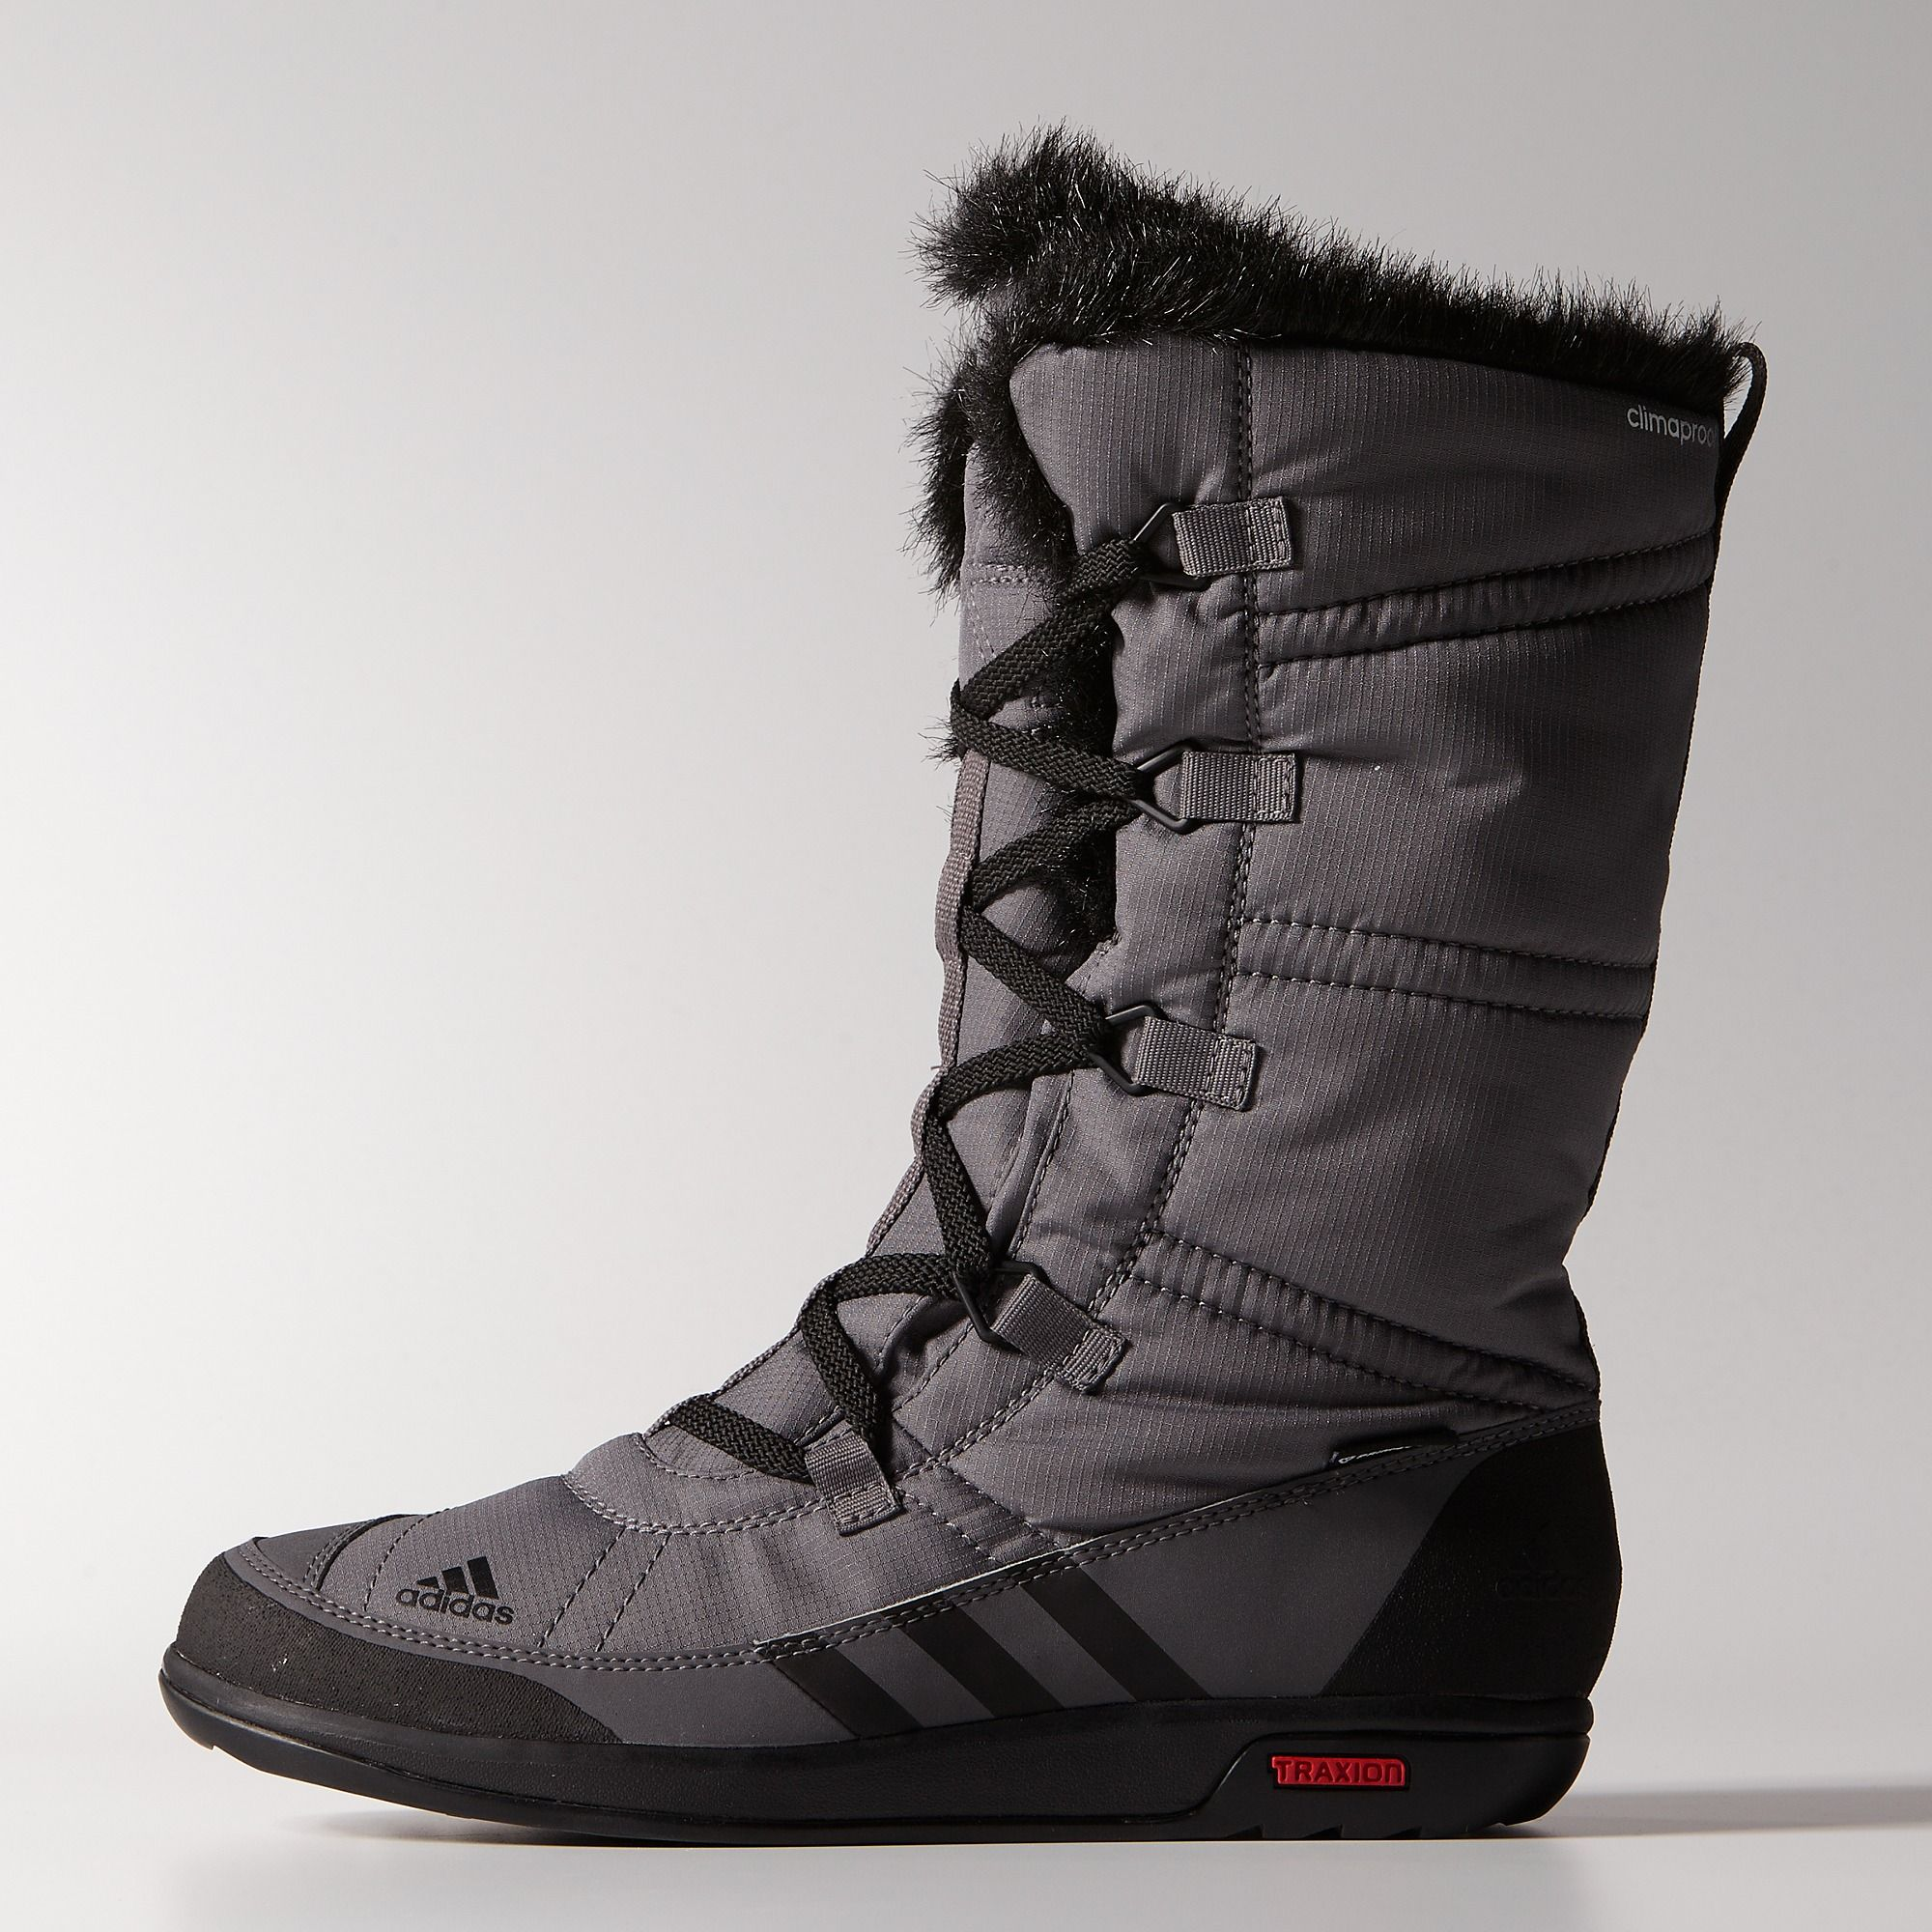 A high-cut winter boot with full lace-up, the women's adidas Choleah